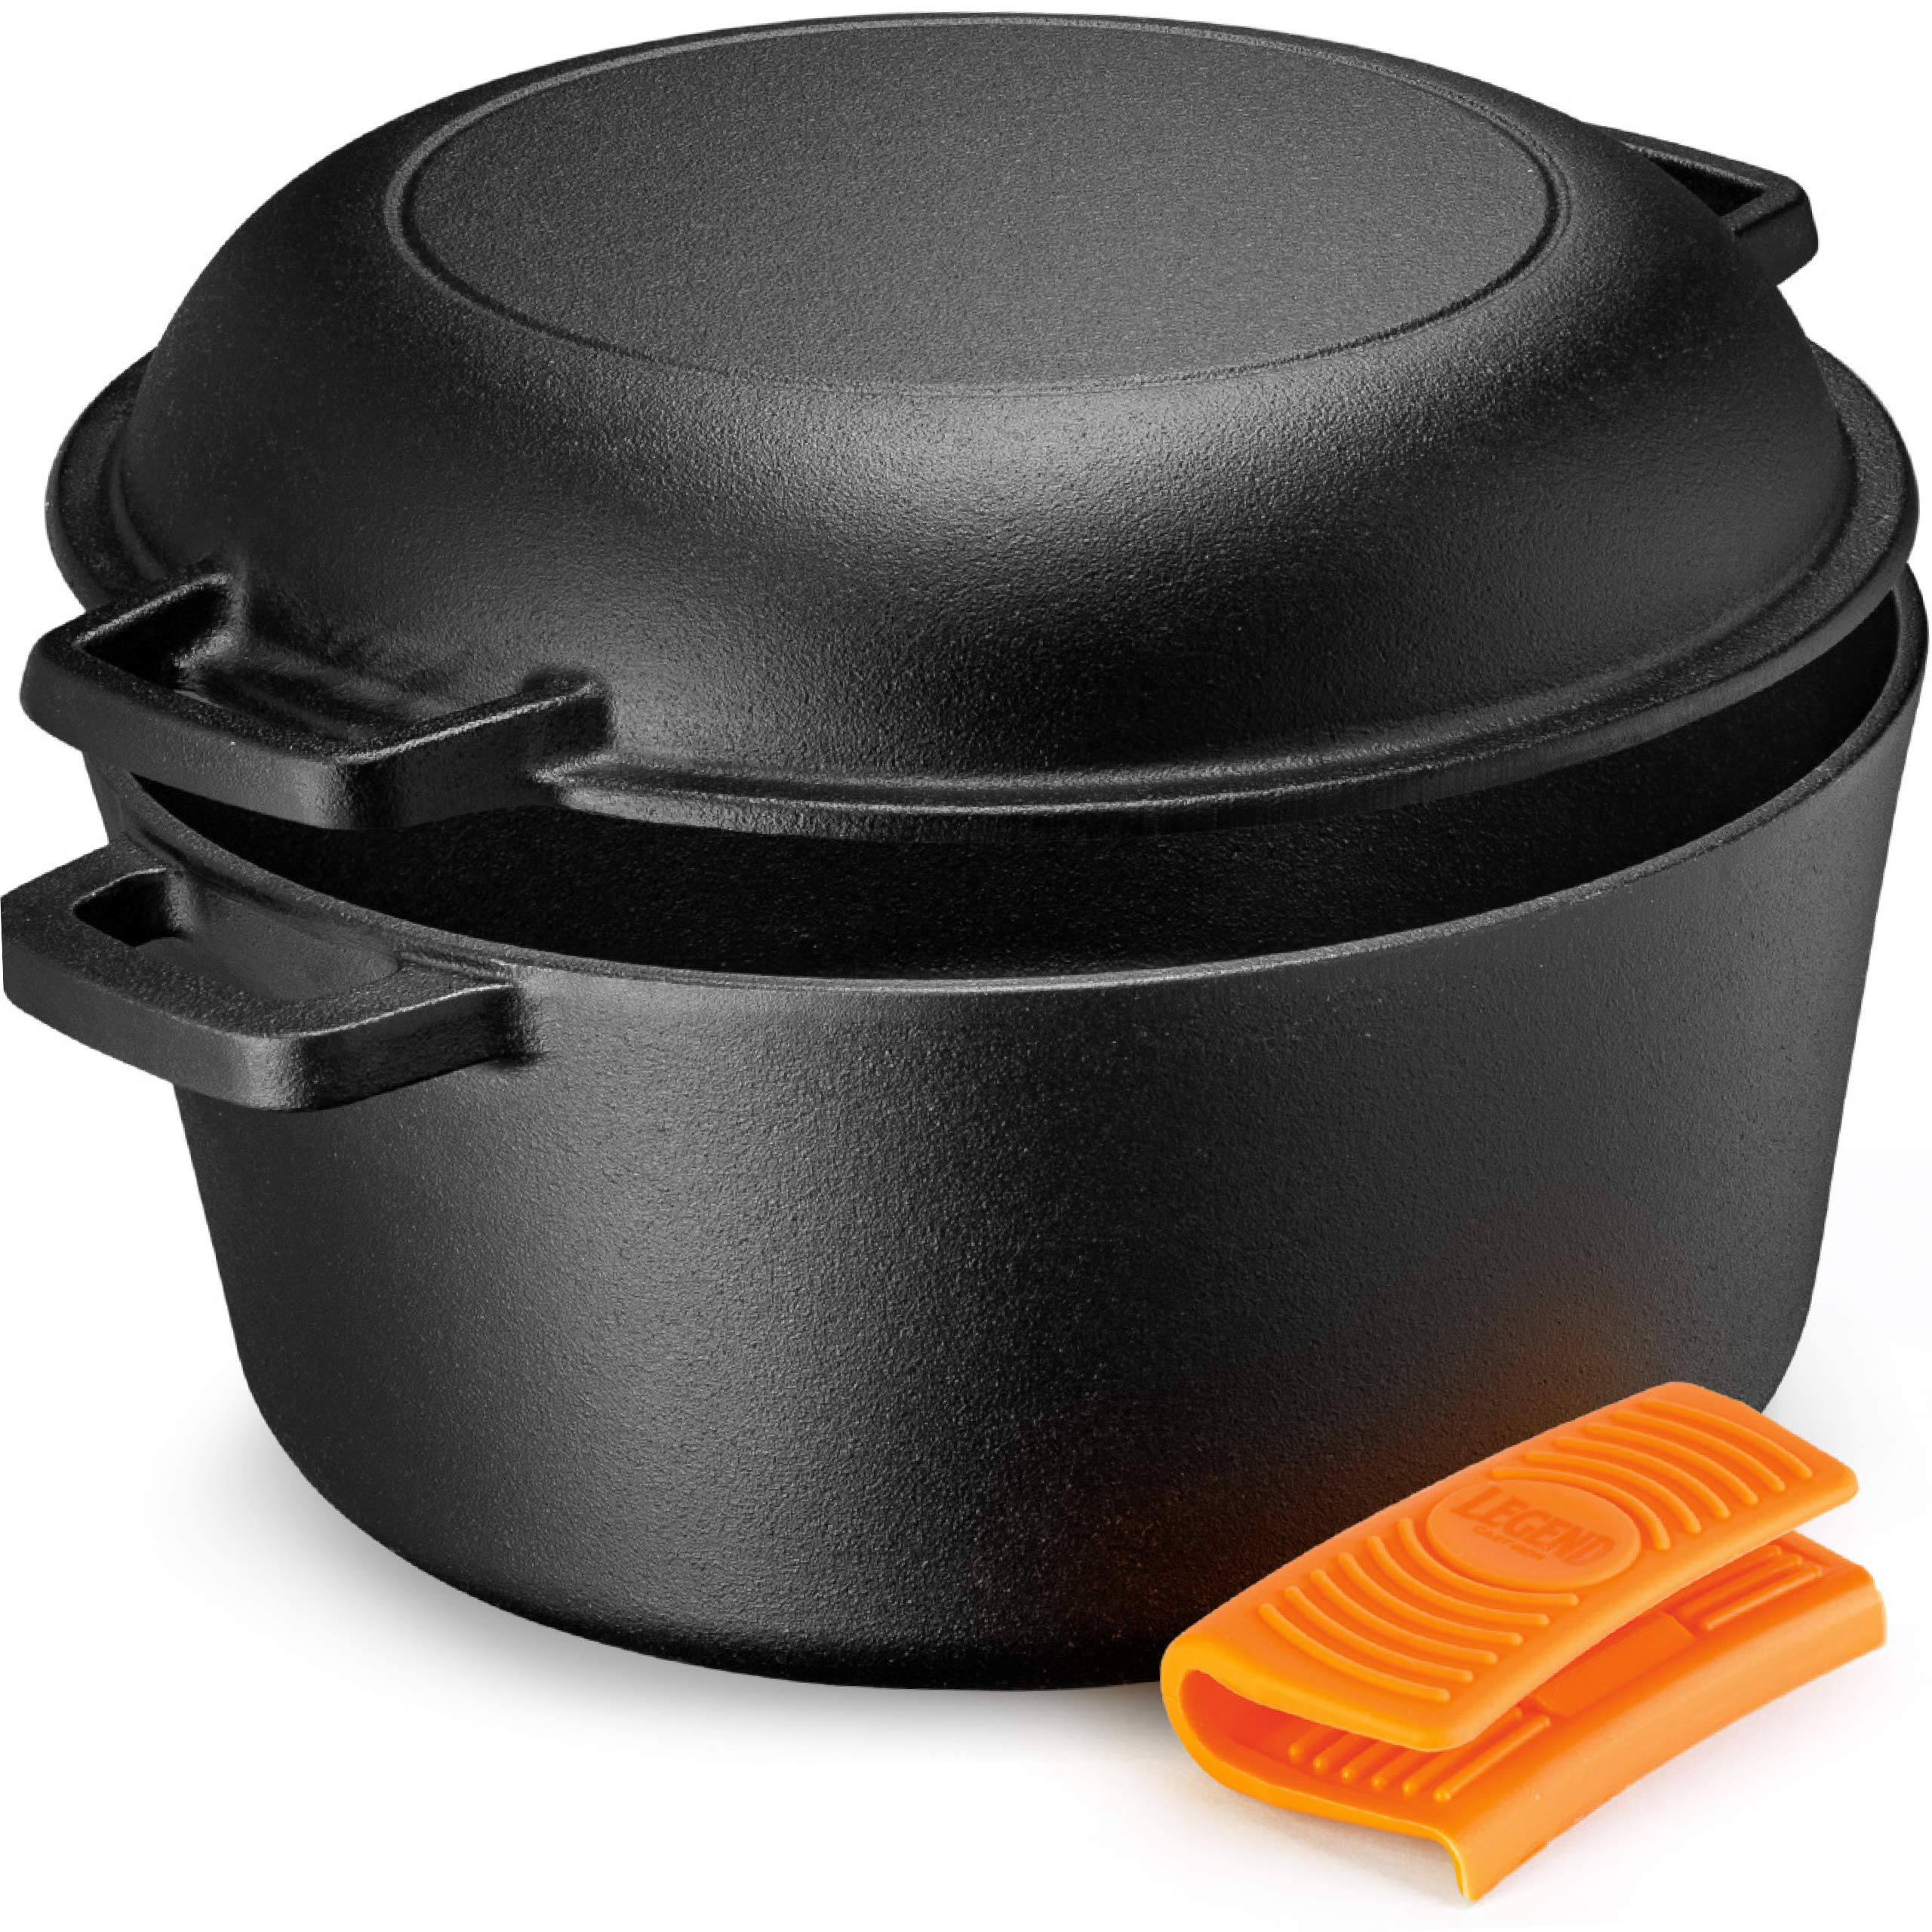 Legend Cast Iron Dutch Oven | 5 Quart Cast Iron Multi Cooker Stock Pot For Frying, Cooking, Baking & Broiling on Induction, Electric, Gas & In Oven | Lightly Pre-Seasoned & Gets Better with Each Use by Legend Cast Iron (Image #1)